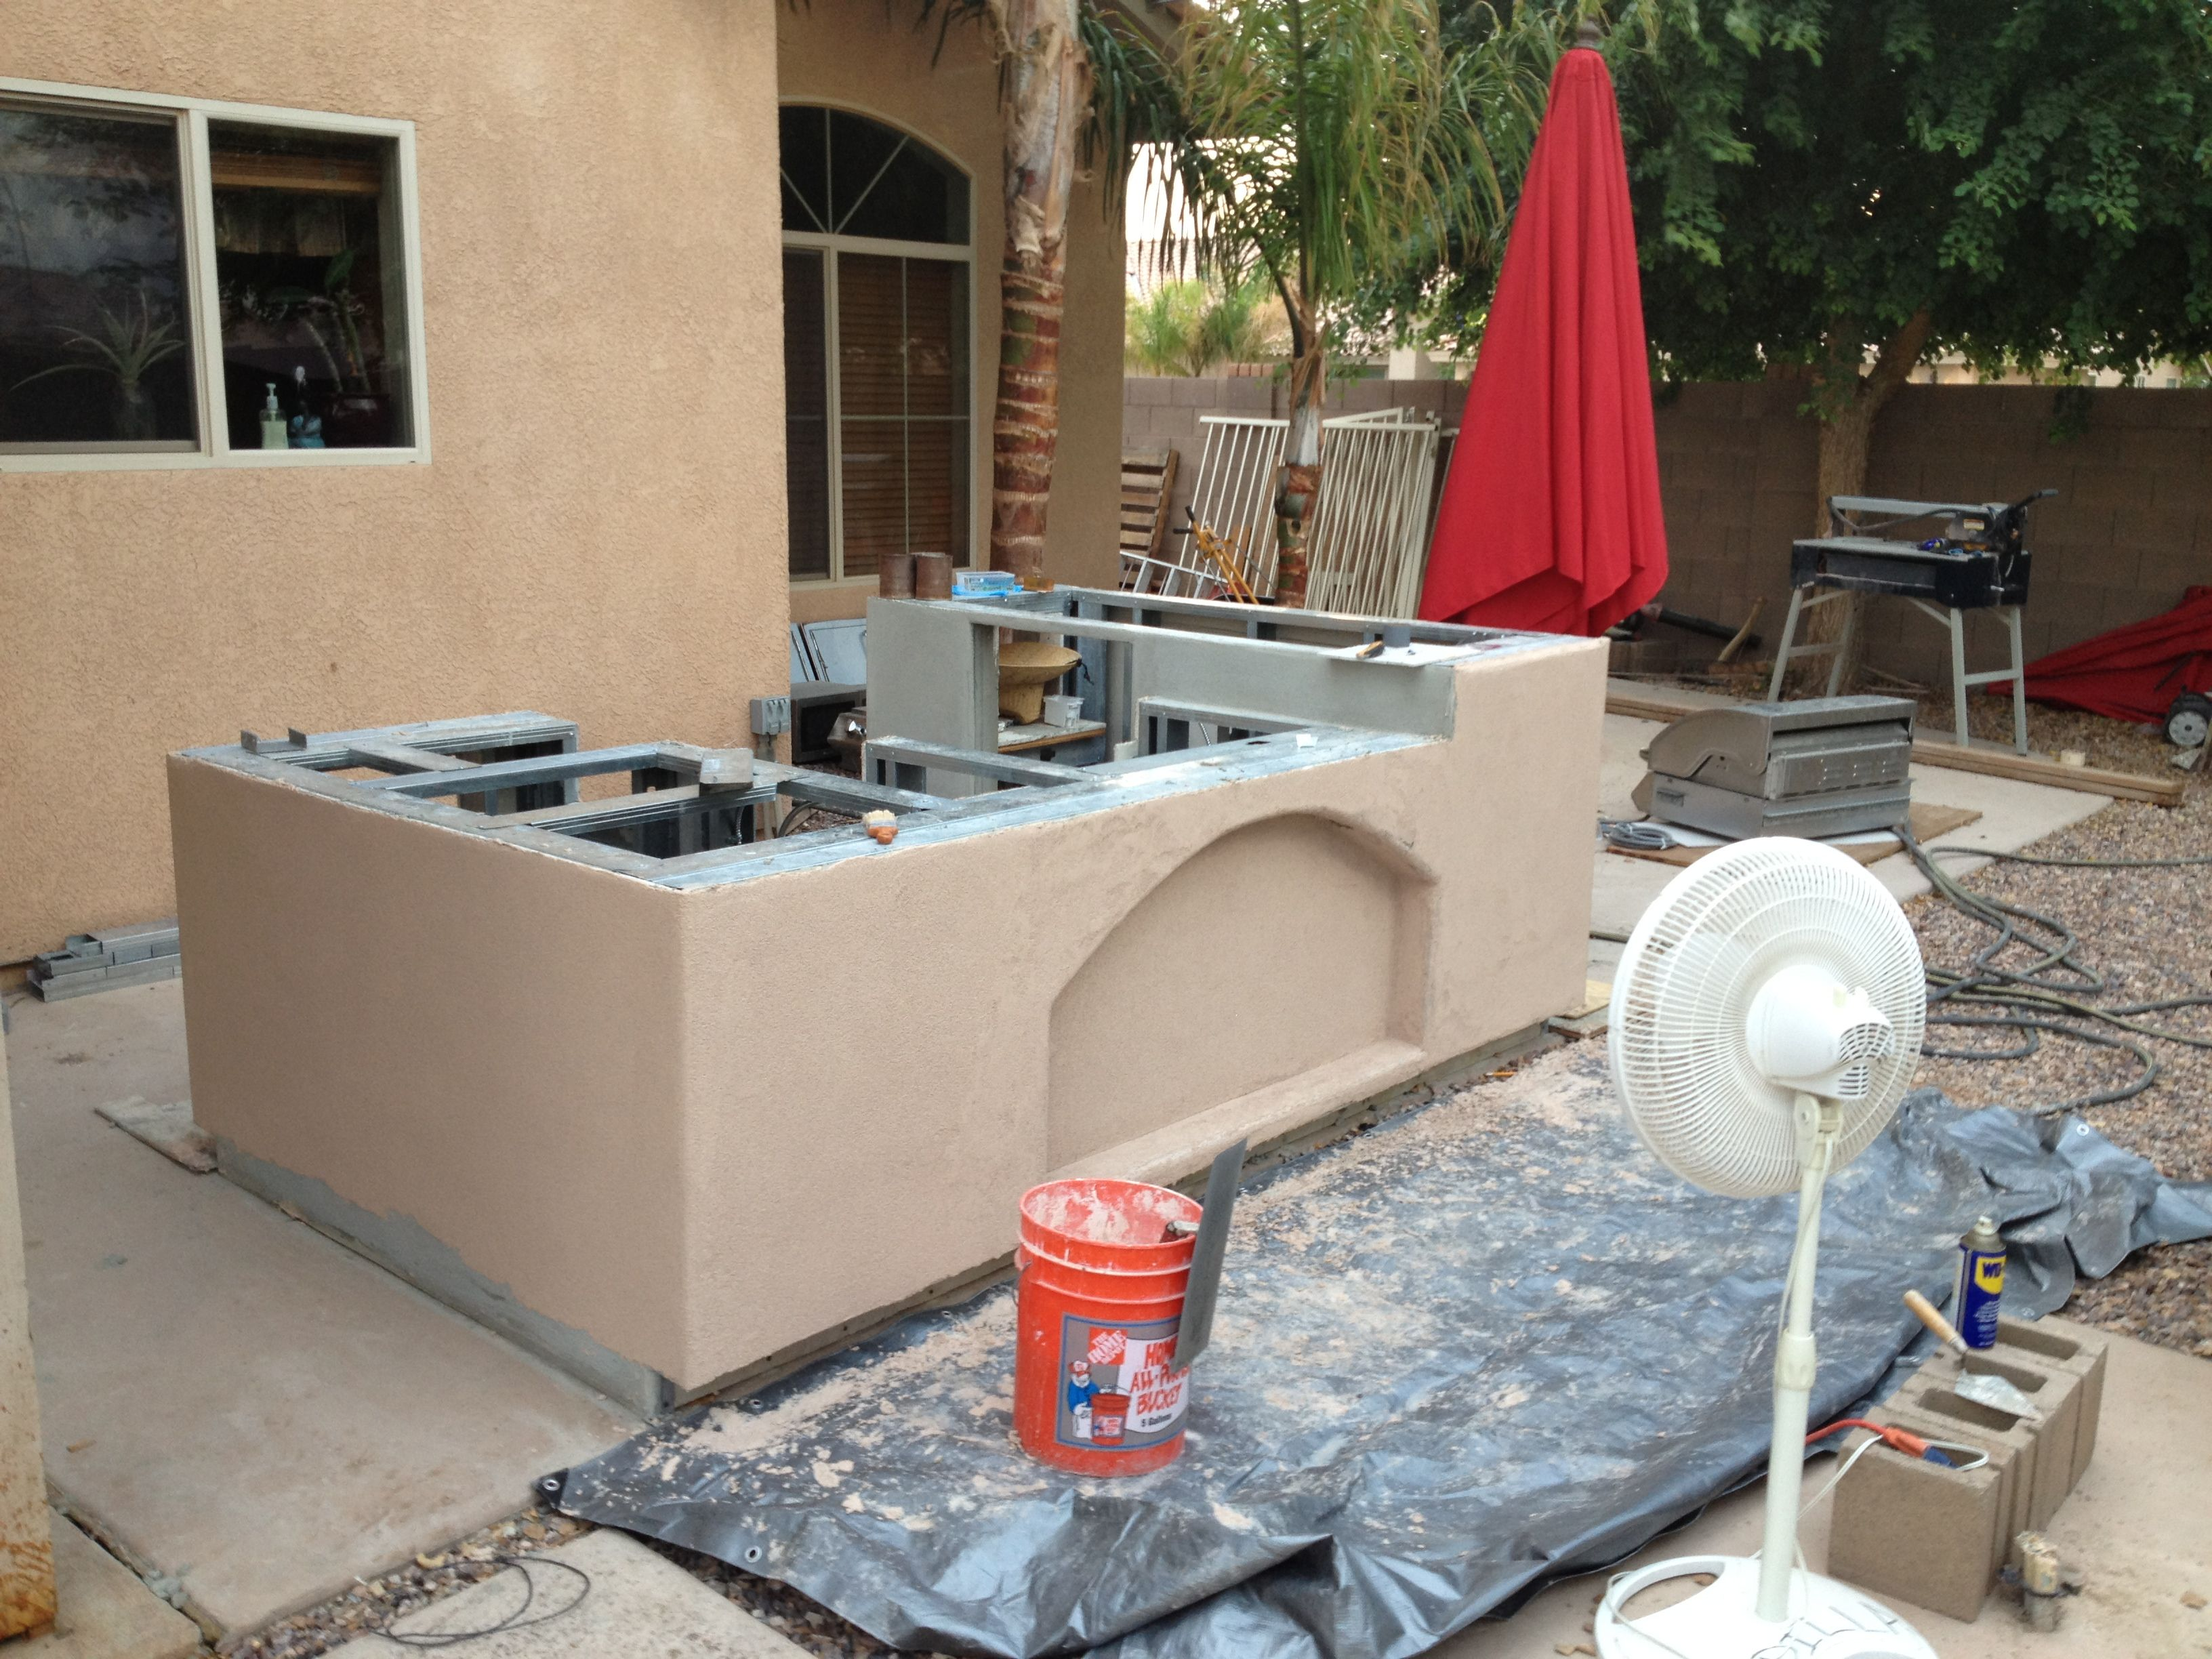 synthetic stucco used on an outdoor kitchen | diy | pinterest